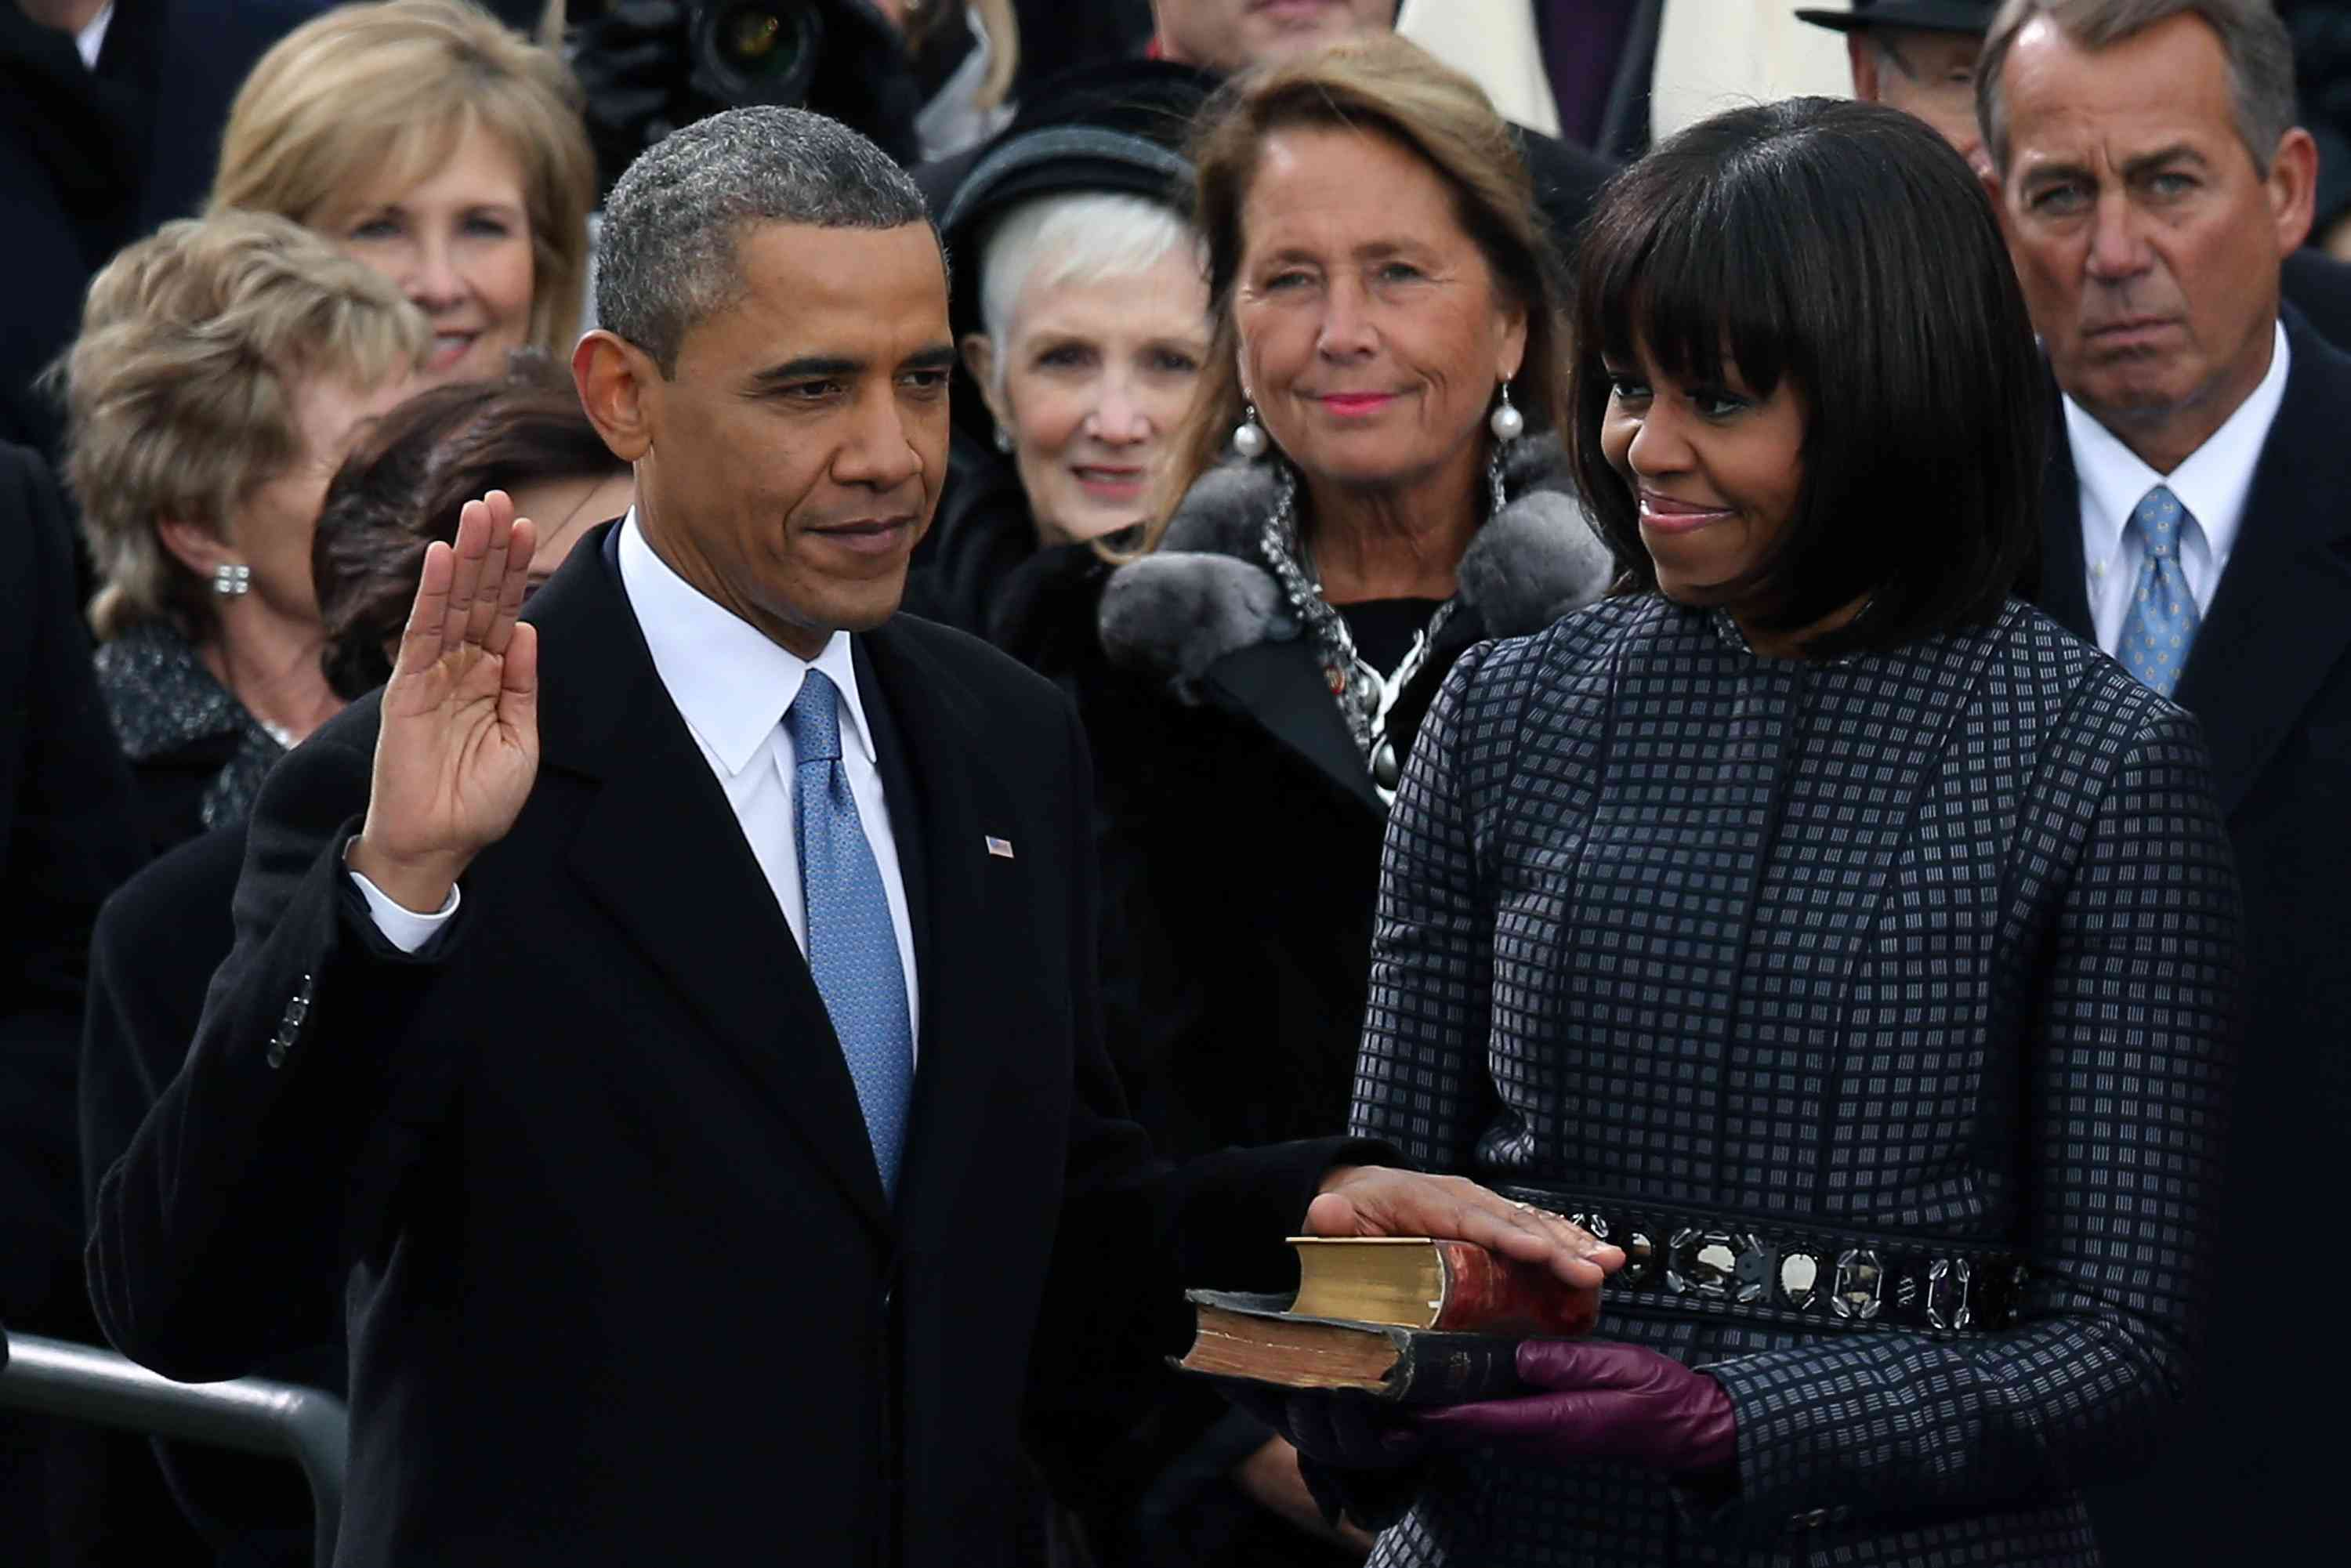 U.S. President Barack Obama is sworn in as First lady Michelle Obama looks on.